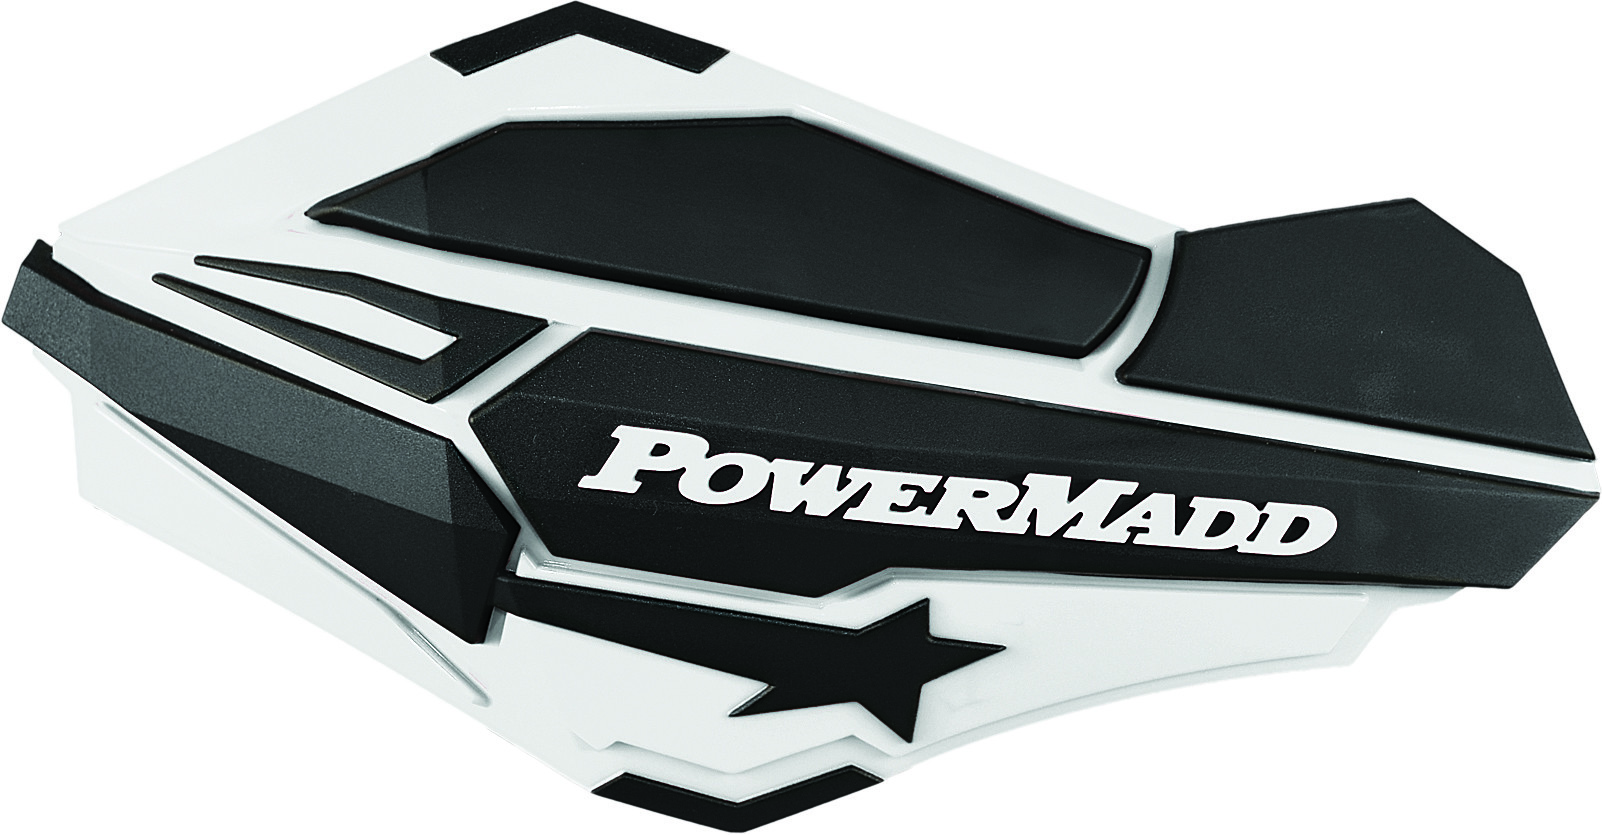 Sentinal Handguards (White/Black)